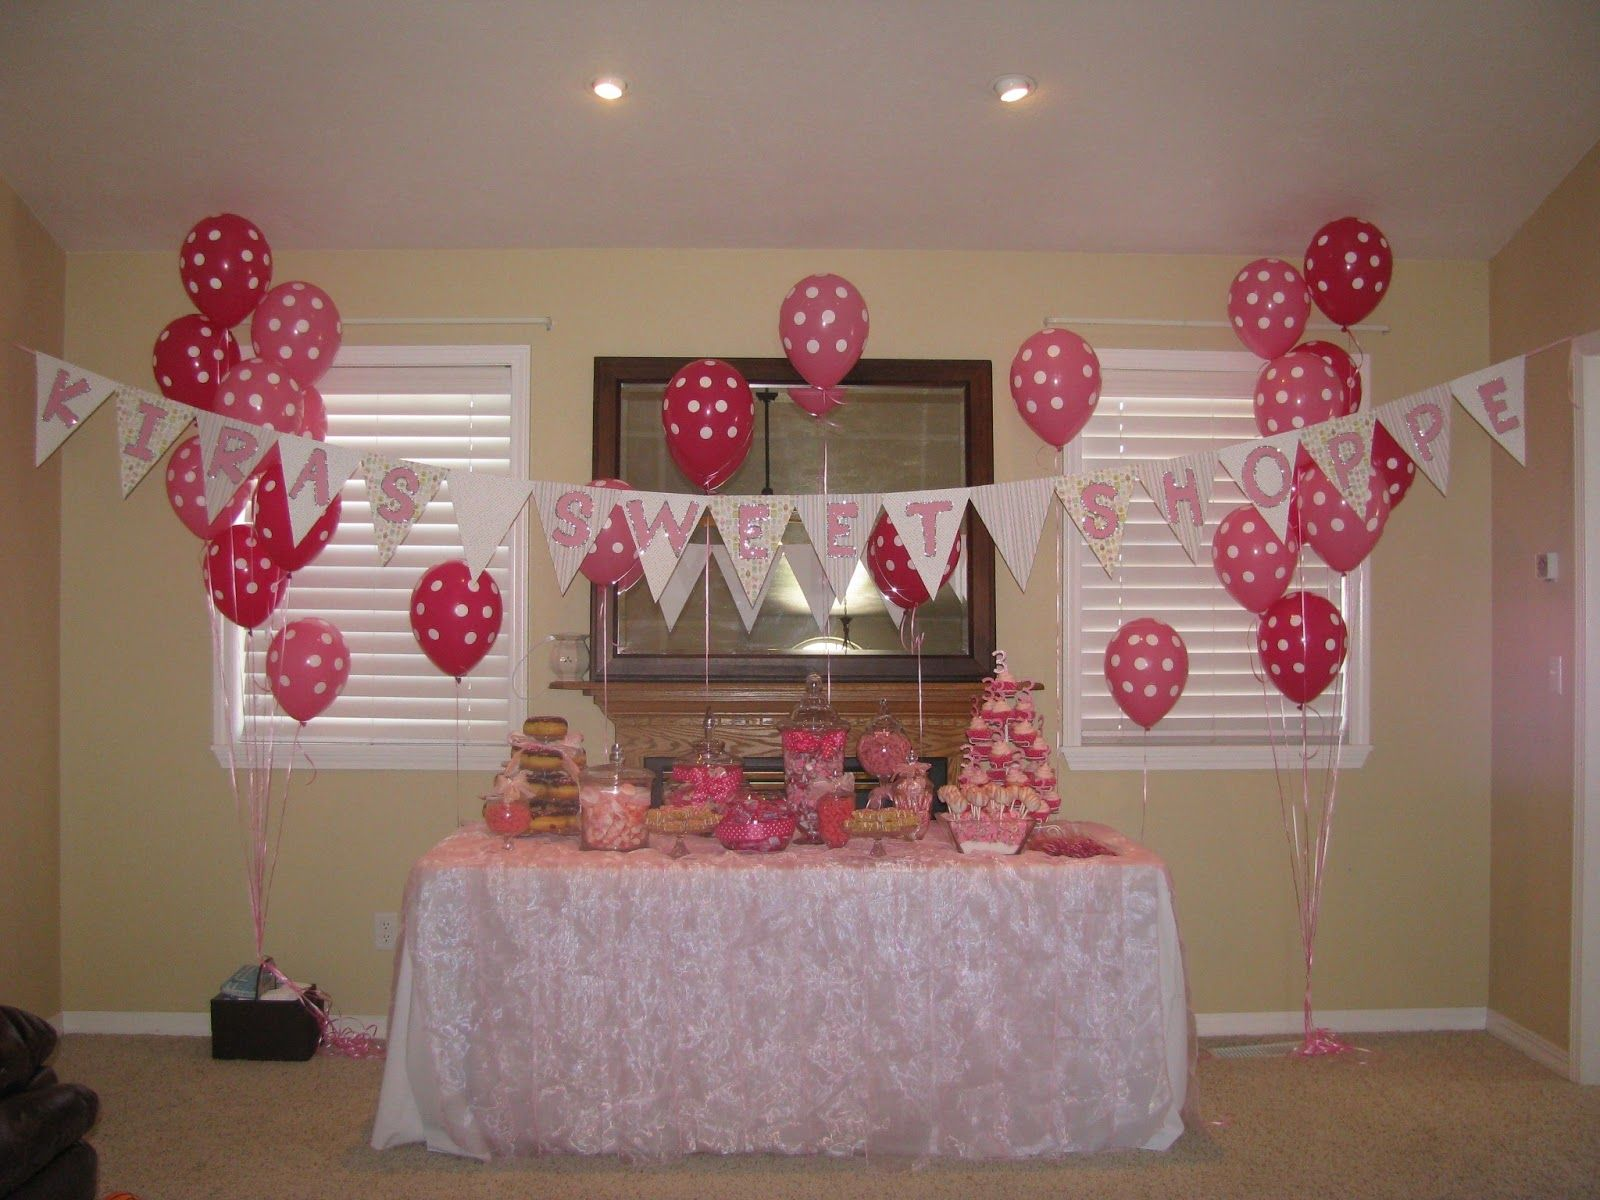 Chic Events by Tia  Pink Sweet Shop dessert table